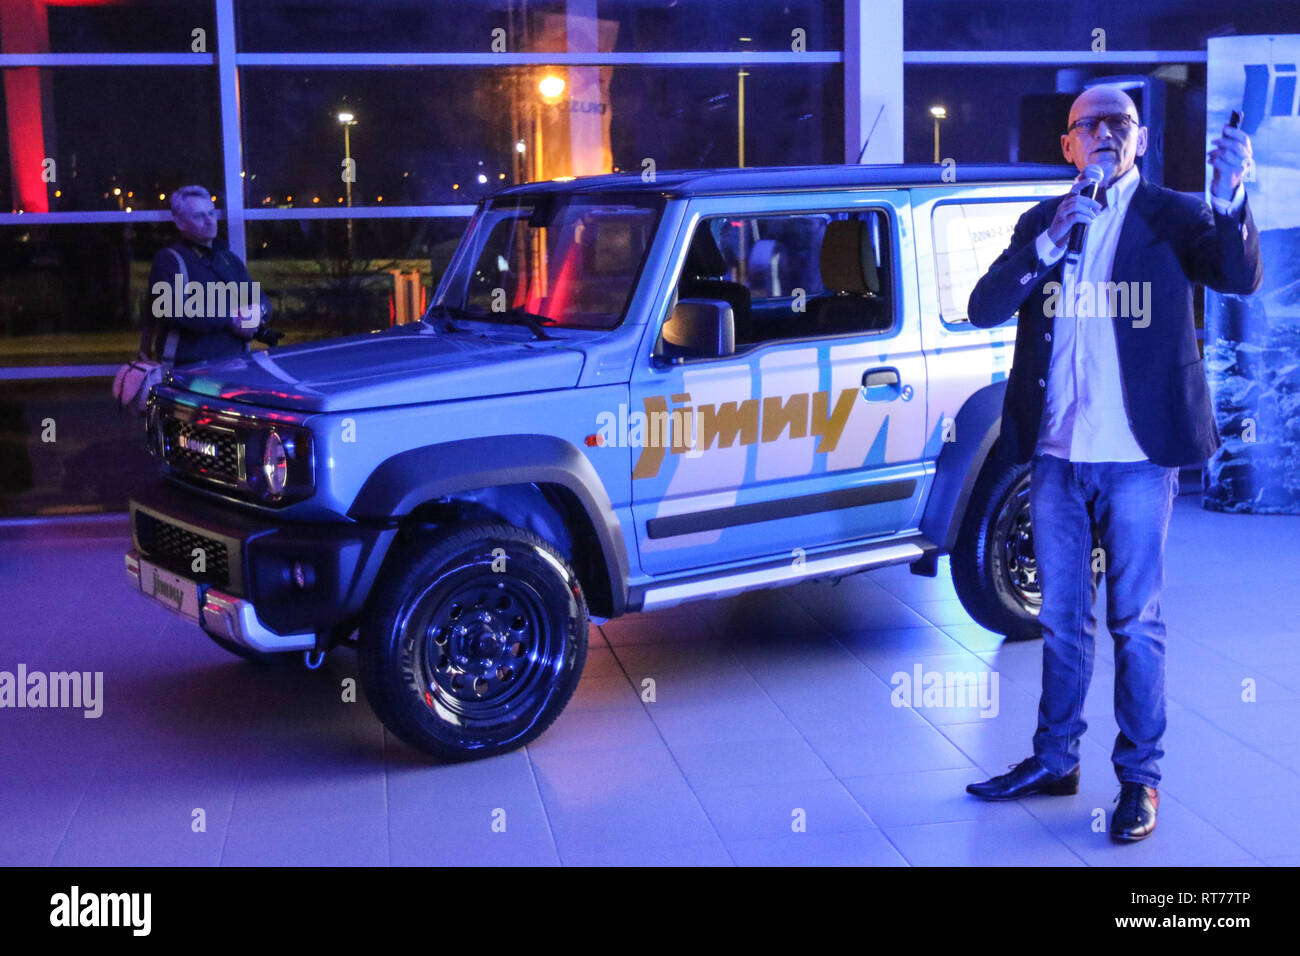 gdansk, poland feb. 27th, 2019 new model of the suzuki jimny car